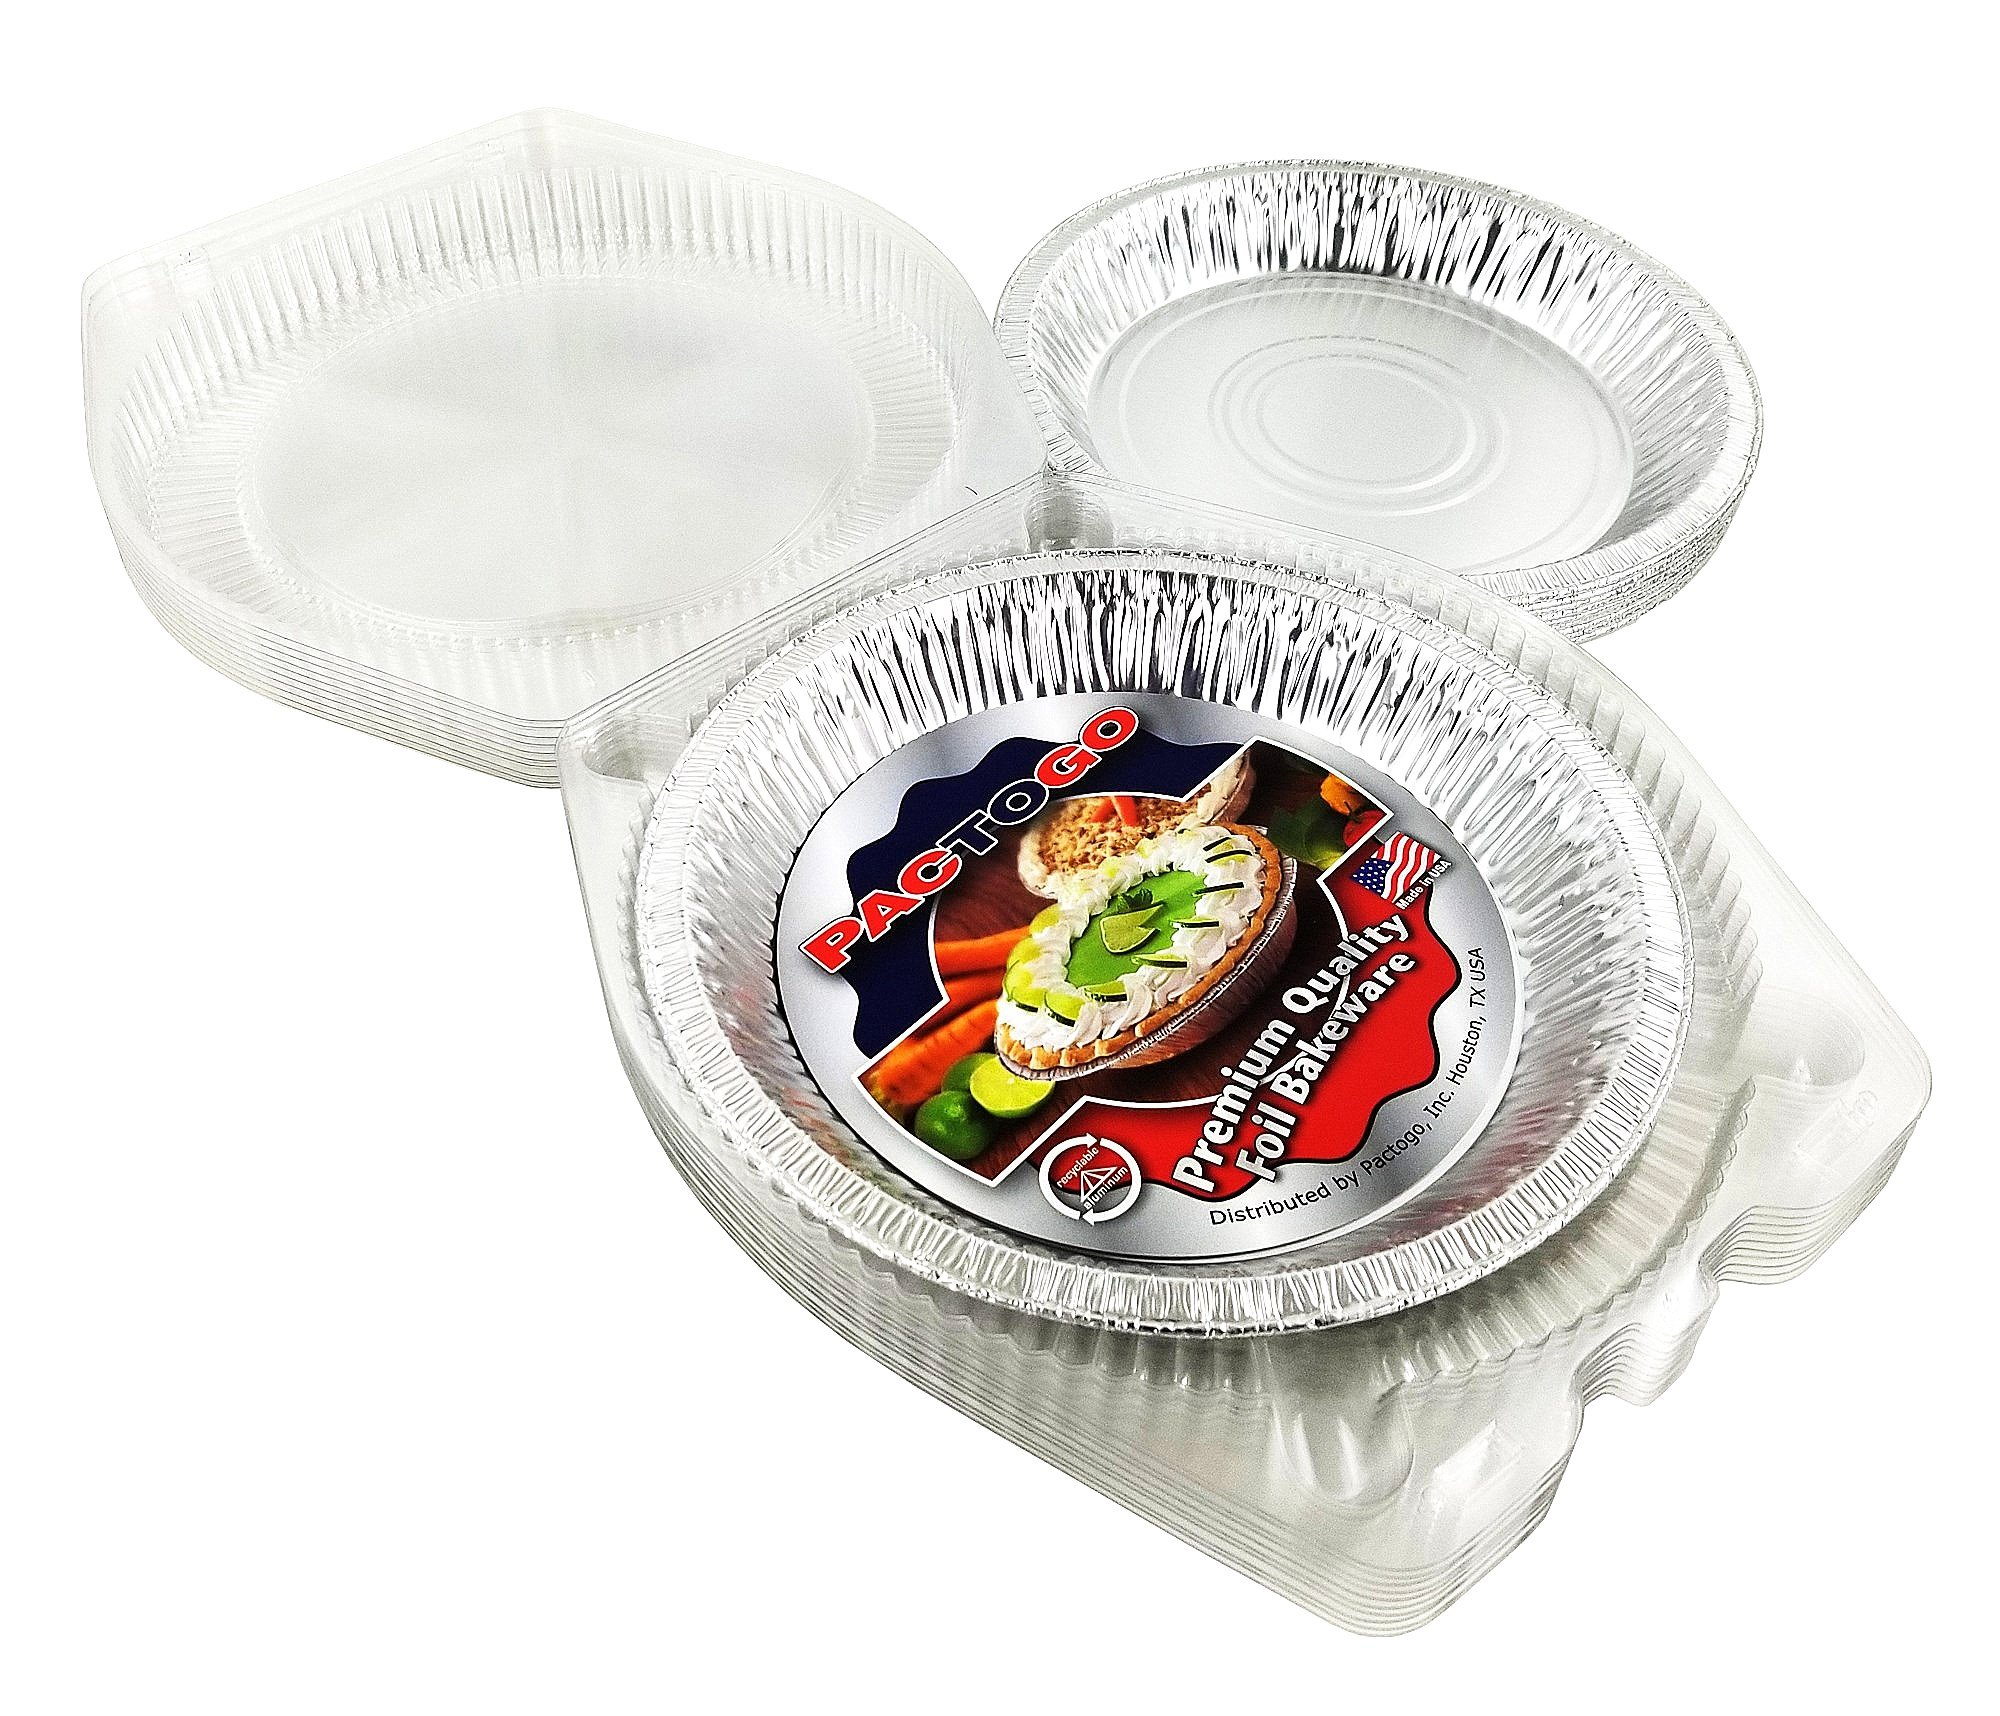 Pactogo 10'' (Actual Top-Out 9-5/8 Inches - Top-In 8-3/4 Inches) Aluminum Foil Pie Pan - Disposable Baking Tin Plates with Clear Plastic Hinged Containers (Pack of 200 Sets)